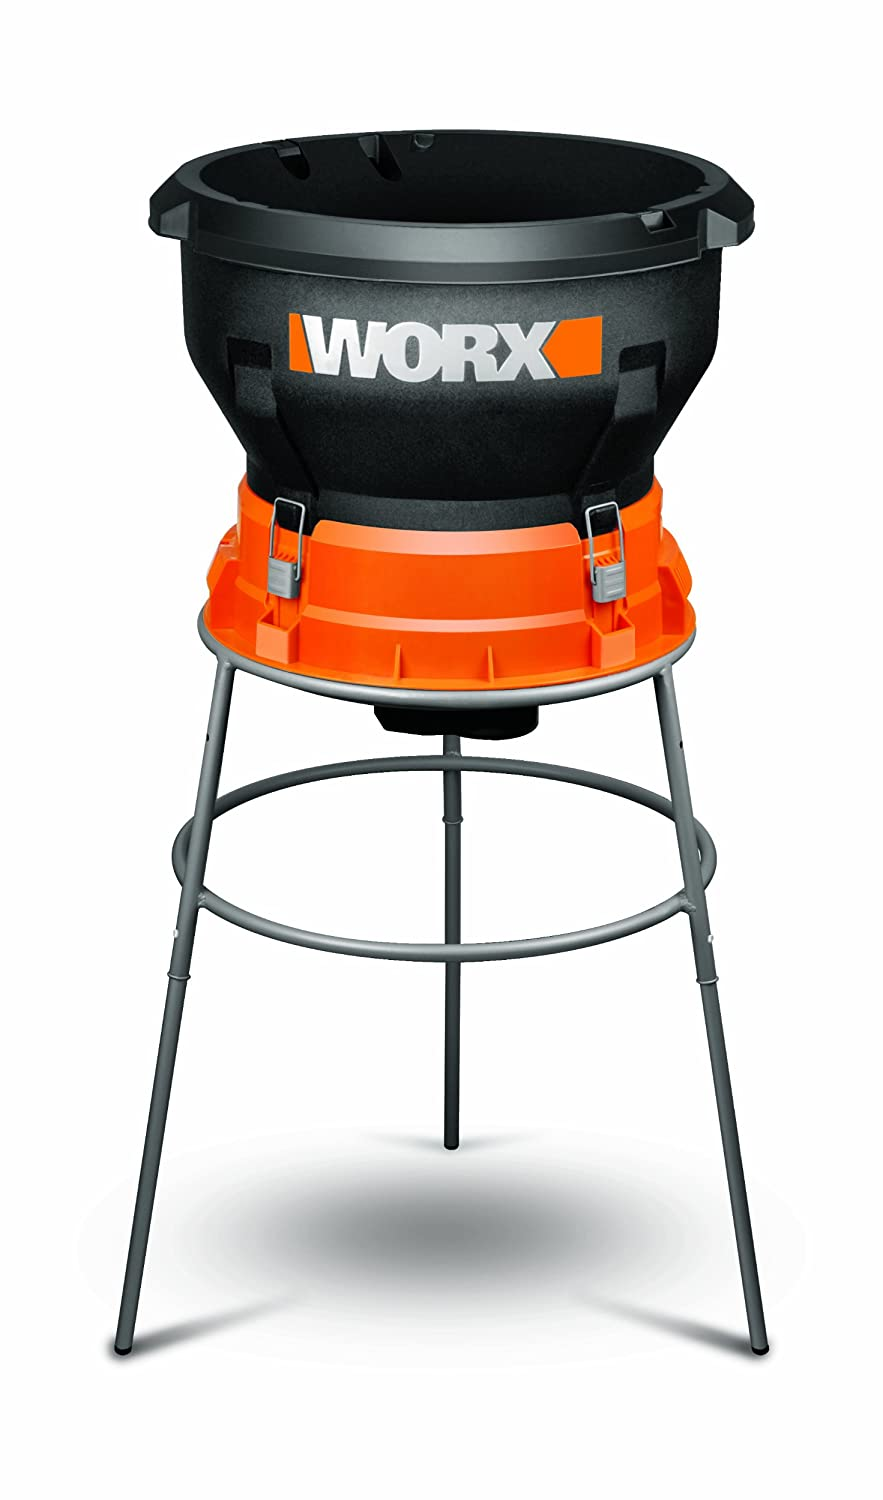 WORX WG430 13 amp Electric Leaf Mulcher/Shredder at Sears.com